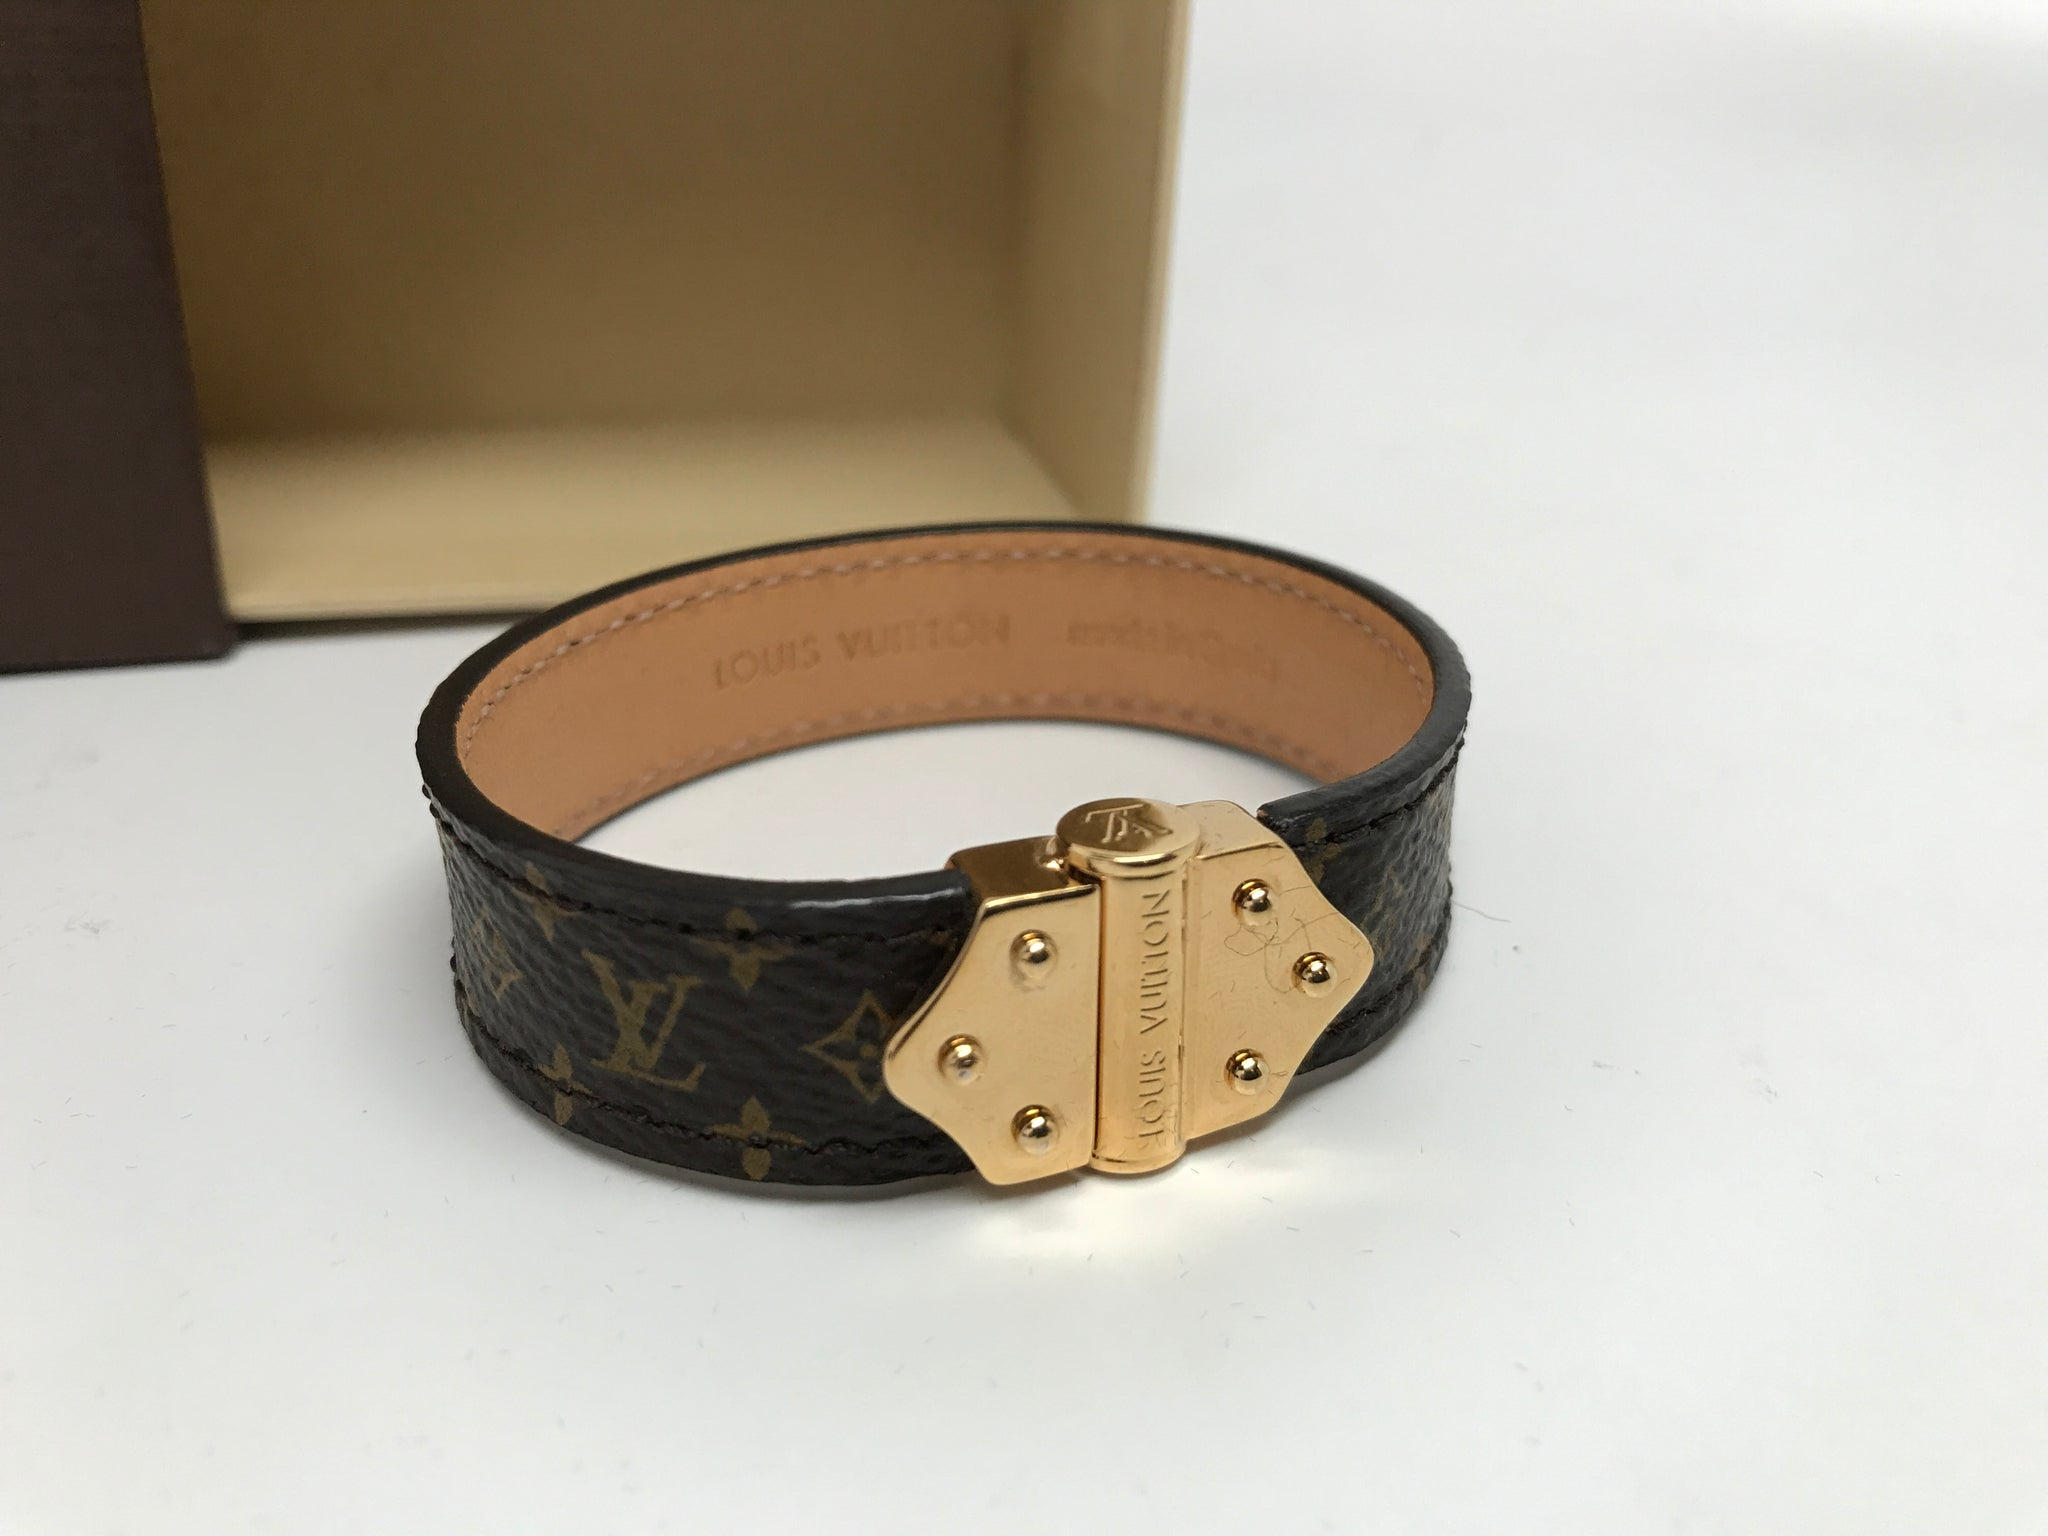 LOUIS VUITTON NANO MONOGRAM BRACELET - SMALL (17)